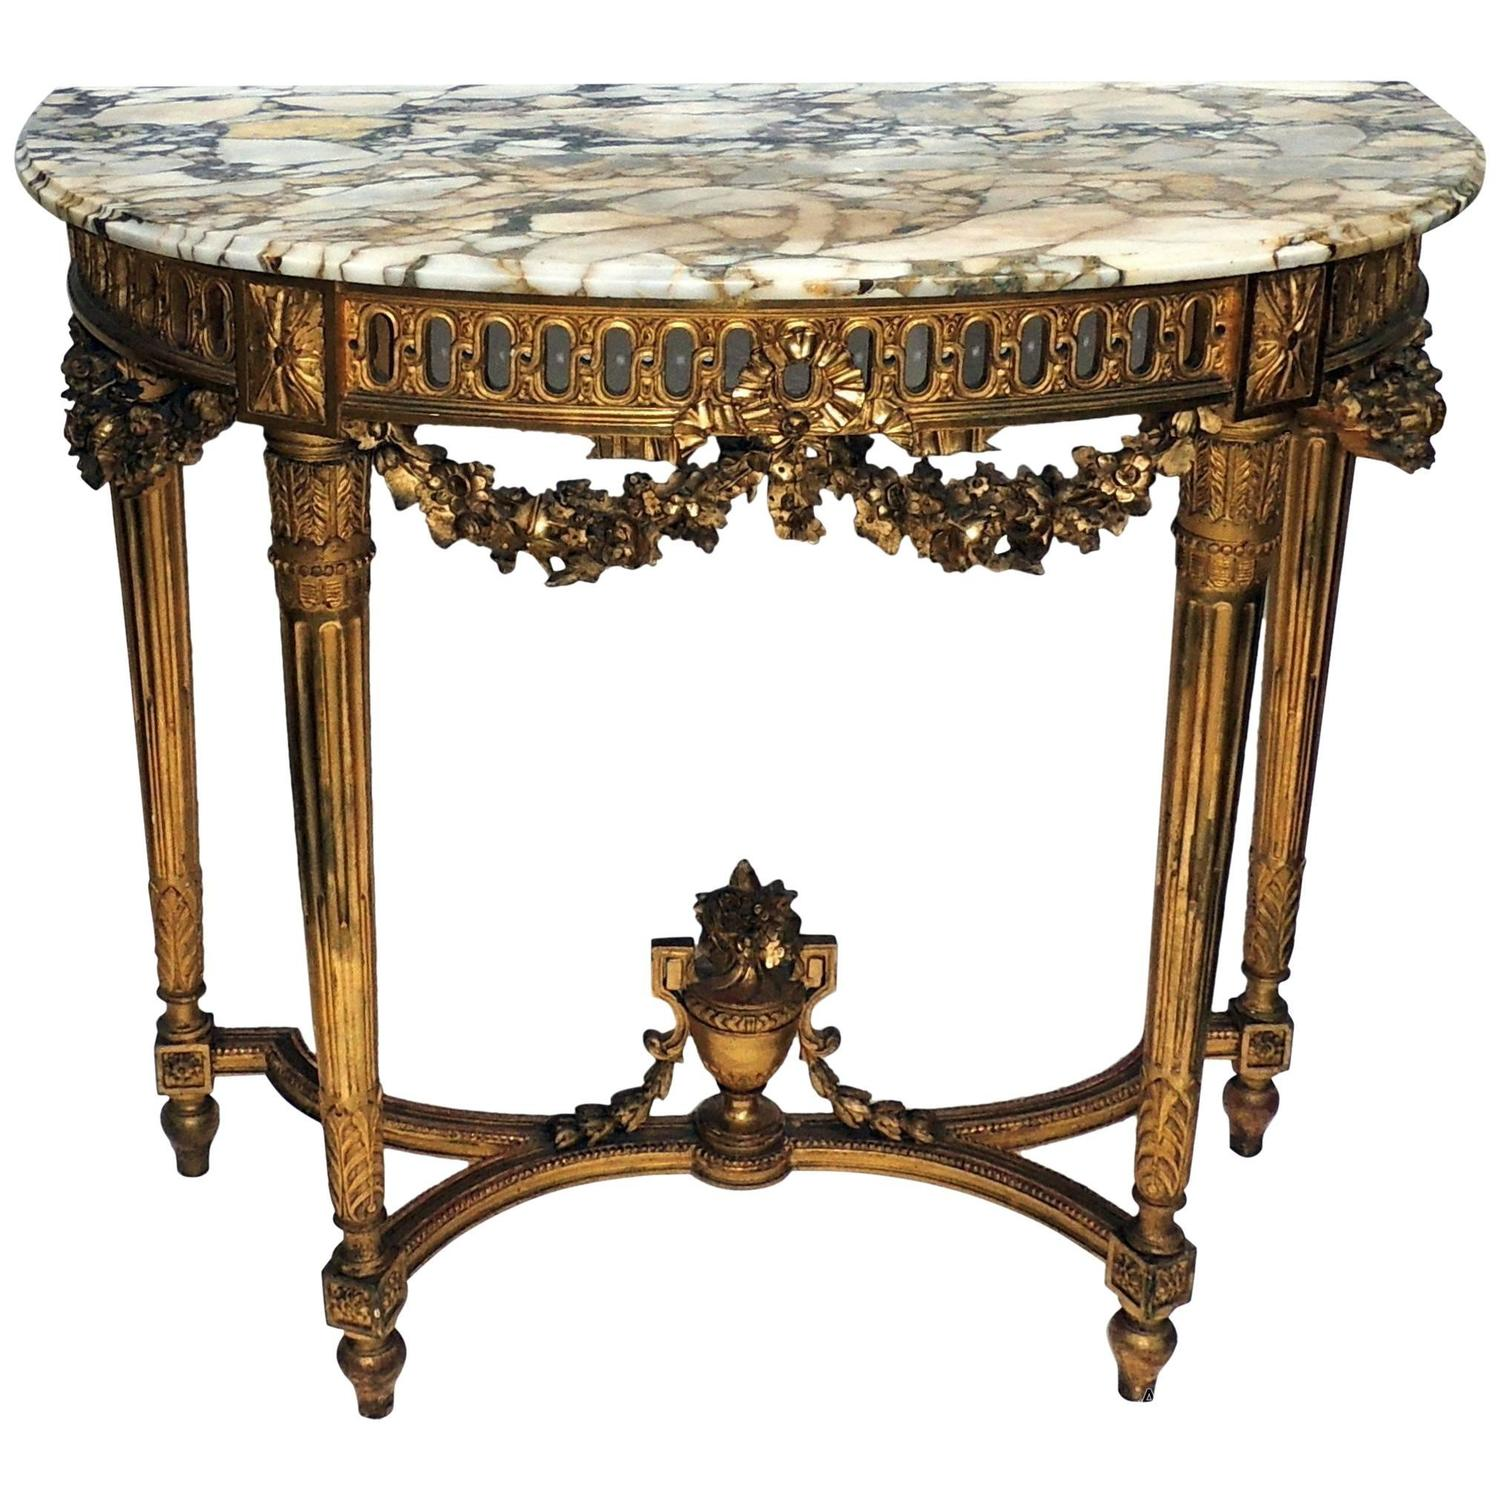 Wonderful French Marble Top Giltwood Carved Demilune Urn Swag Console Table  At 1stdibs